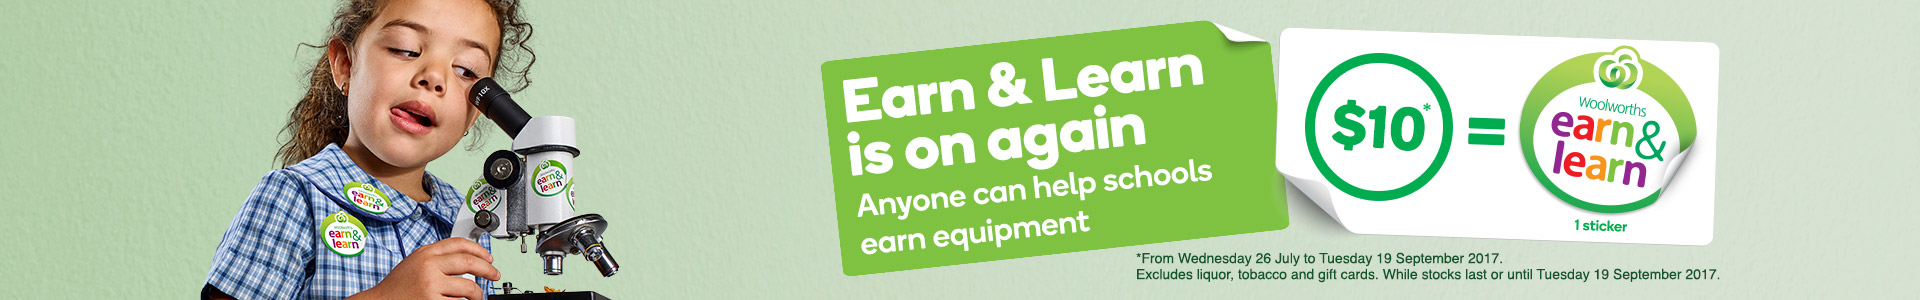 Discover woolworths online earn and learn is on again negle Image collections